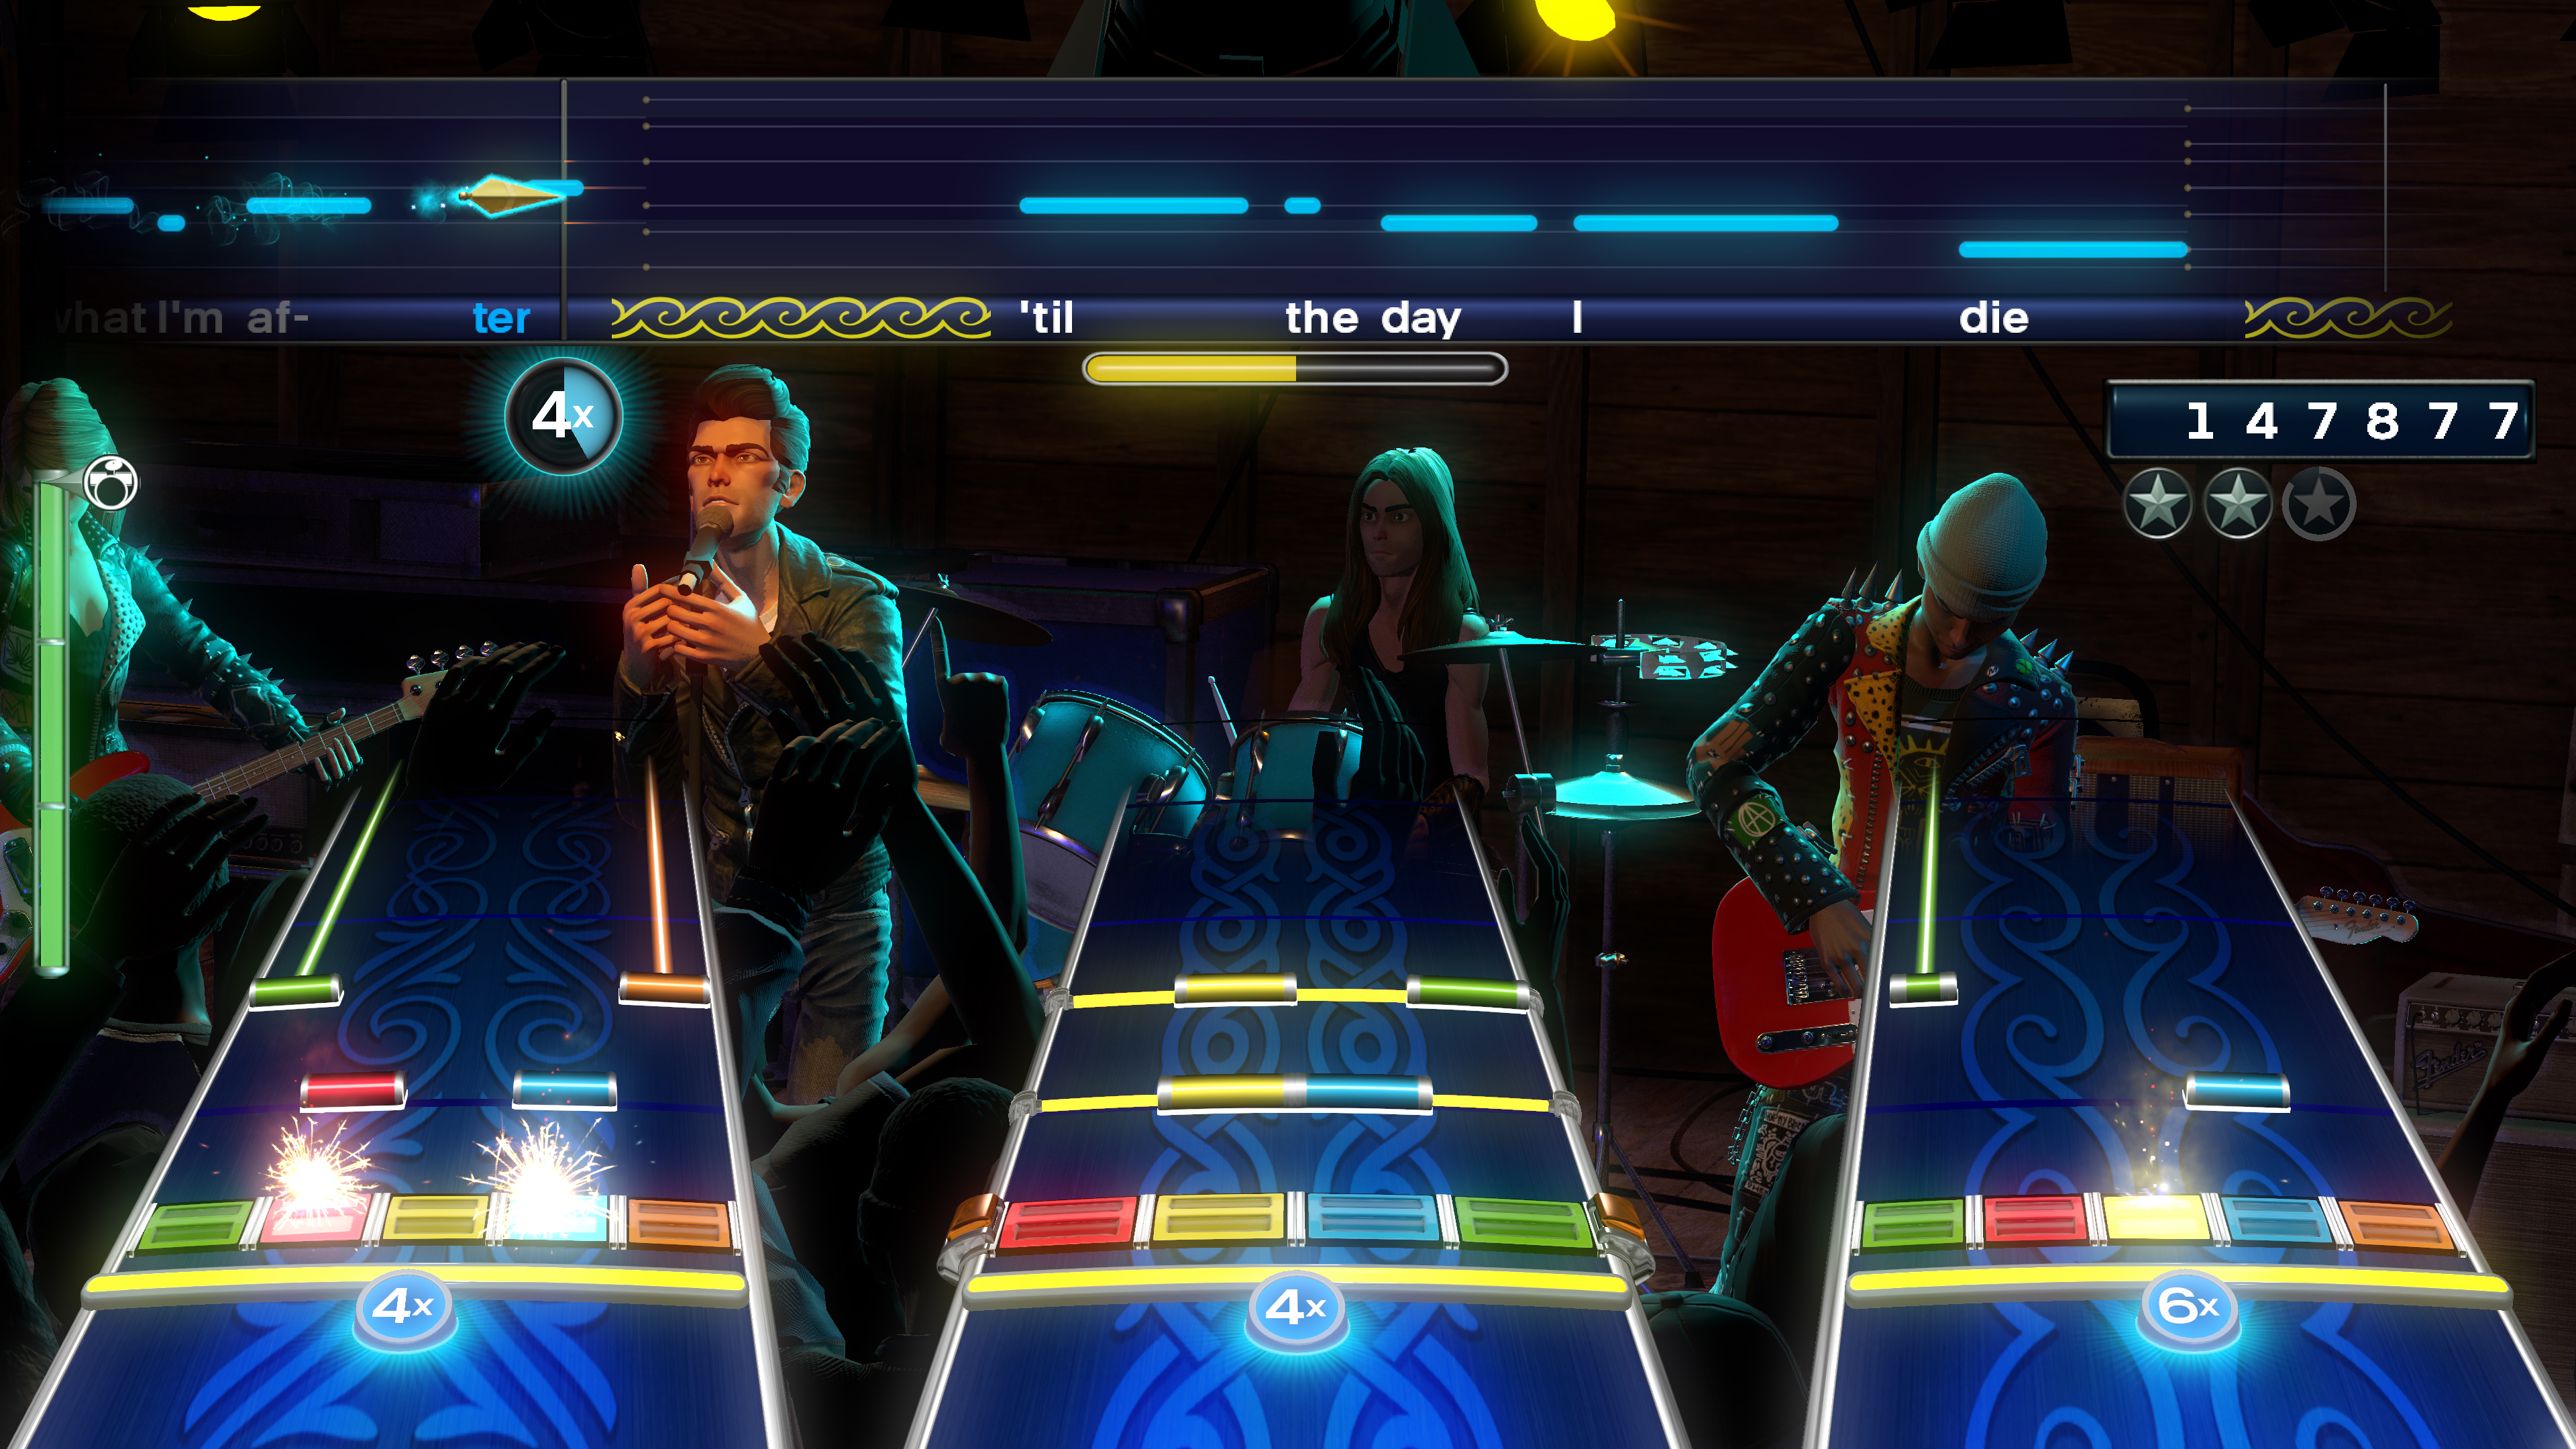 """Hail to the King"" performed in Rock Band 4"